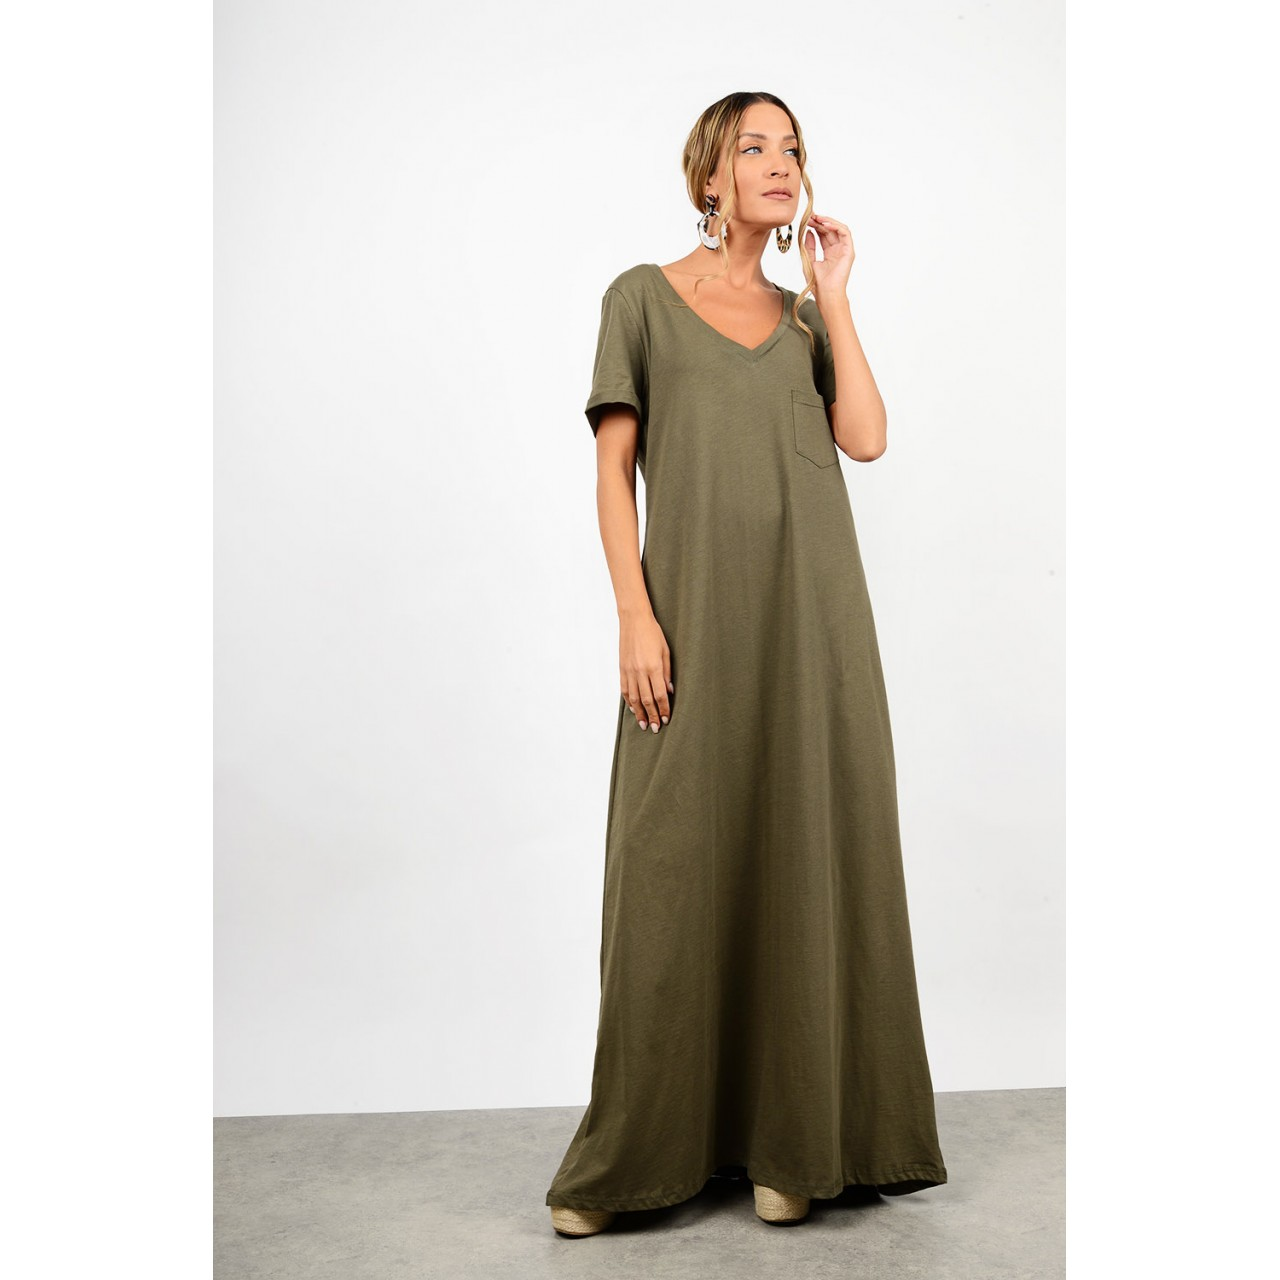 Maxi dress with pocket